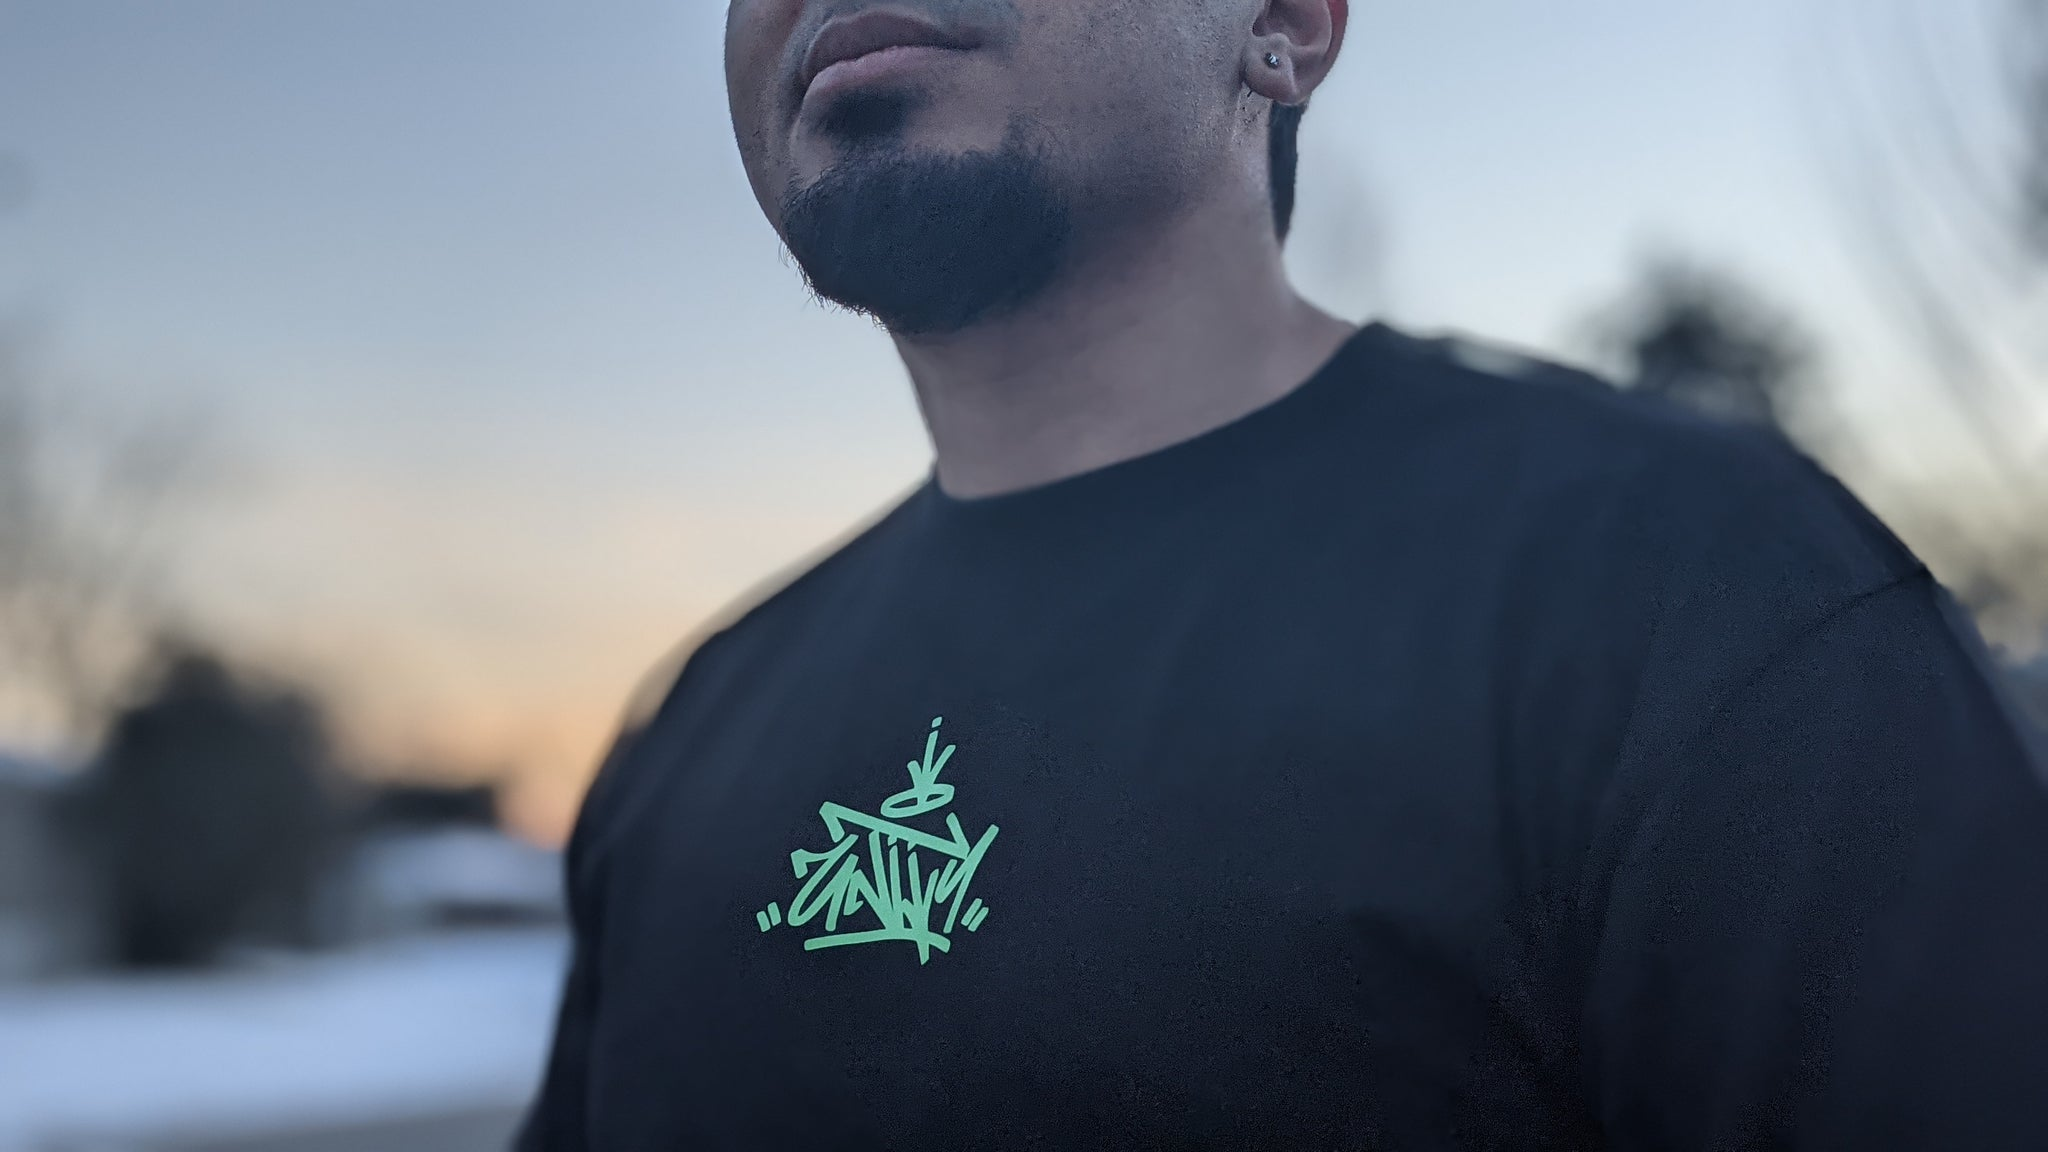 Unity T-shirt - Black w/ Green